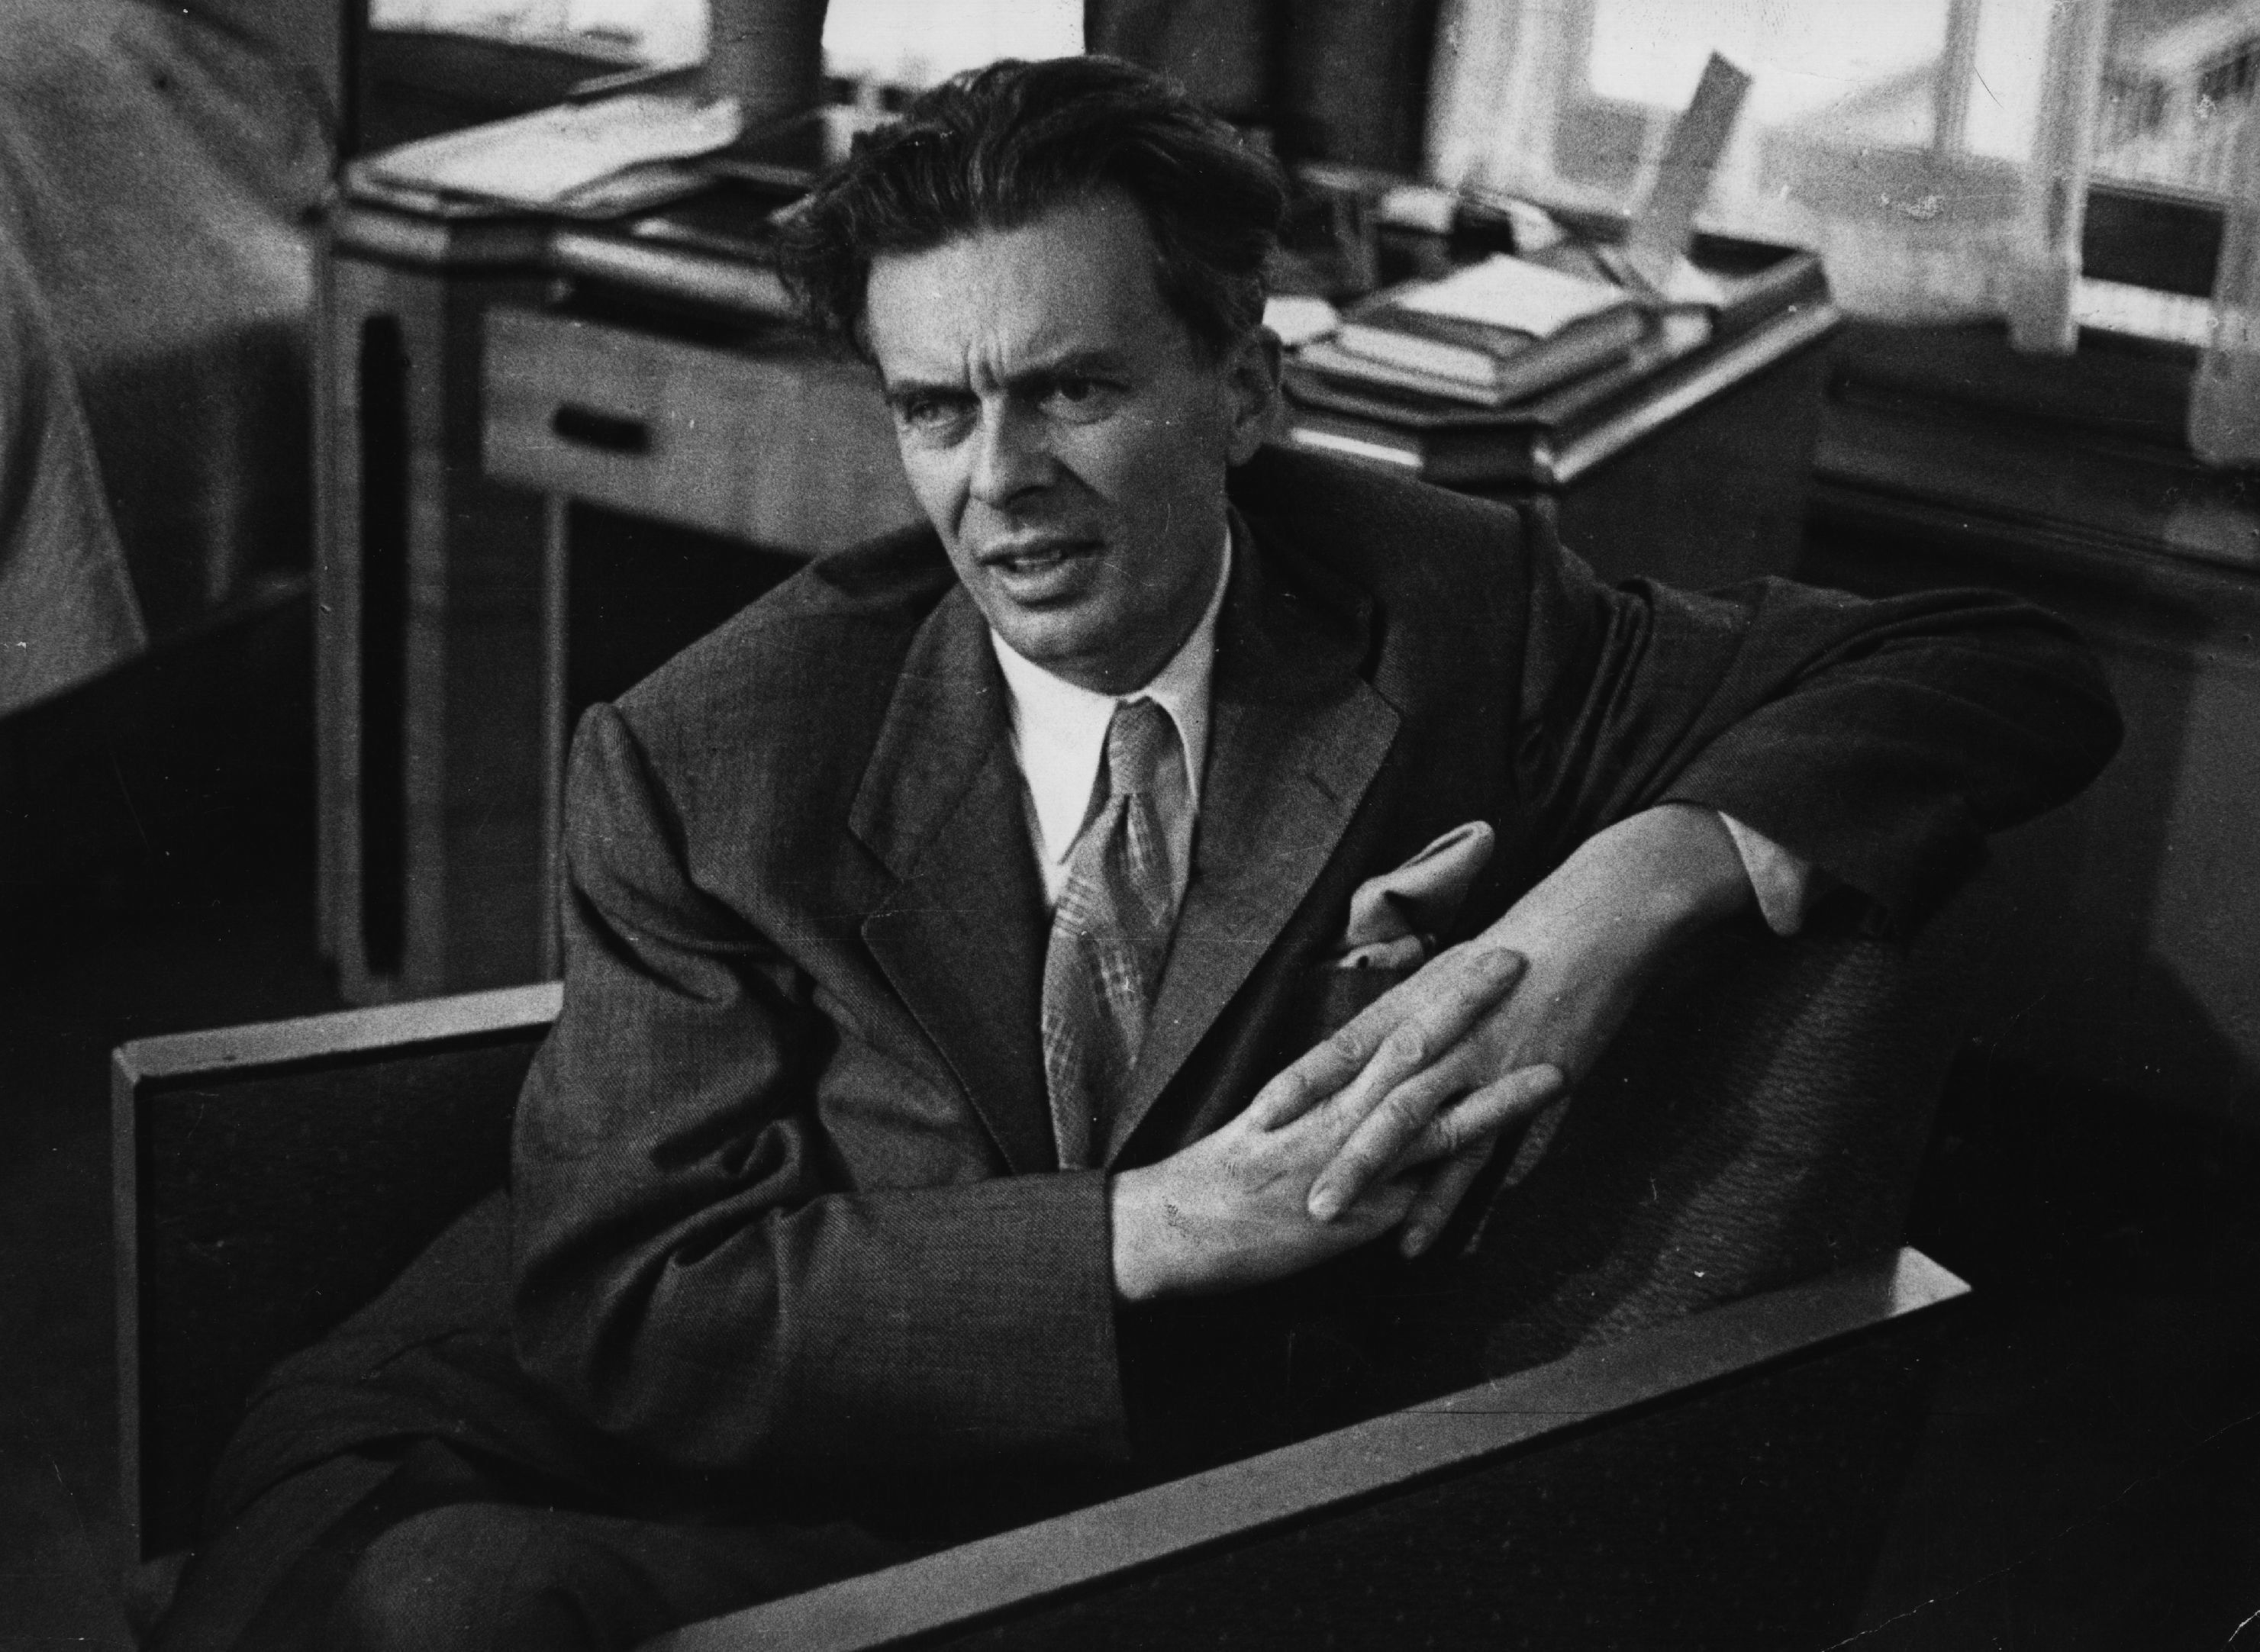 aldous huxley essayist Aldous huxley, a leading essayist, gives guidance on the subject[3] he notes that the essay is a literary device for saying almost everything about almost anything, and adds that by tradition, almost.